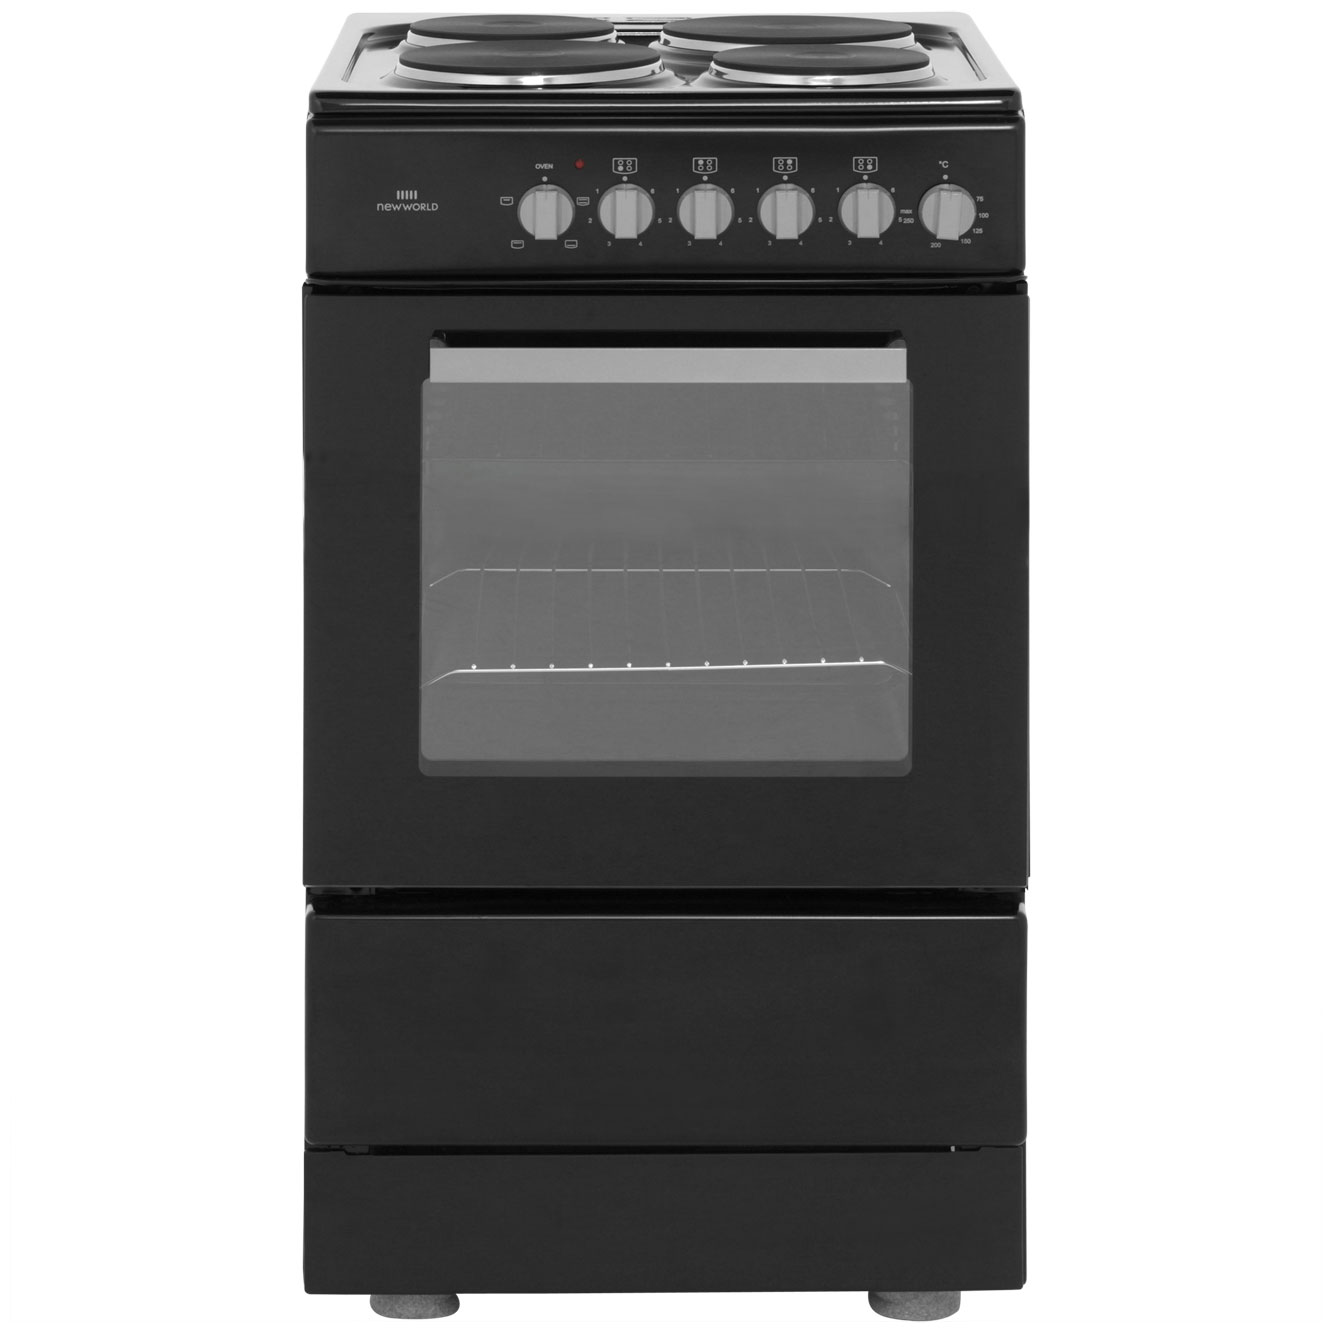 Newworld NWES50S Electric Cooker with Solid Plate Hob - Black